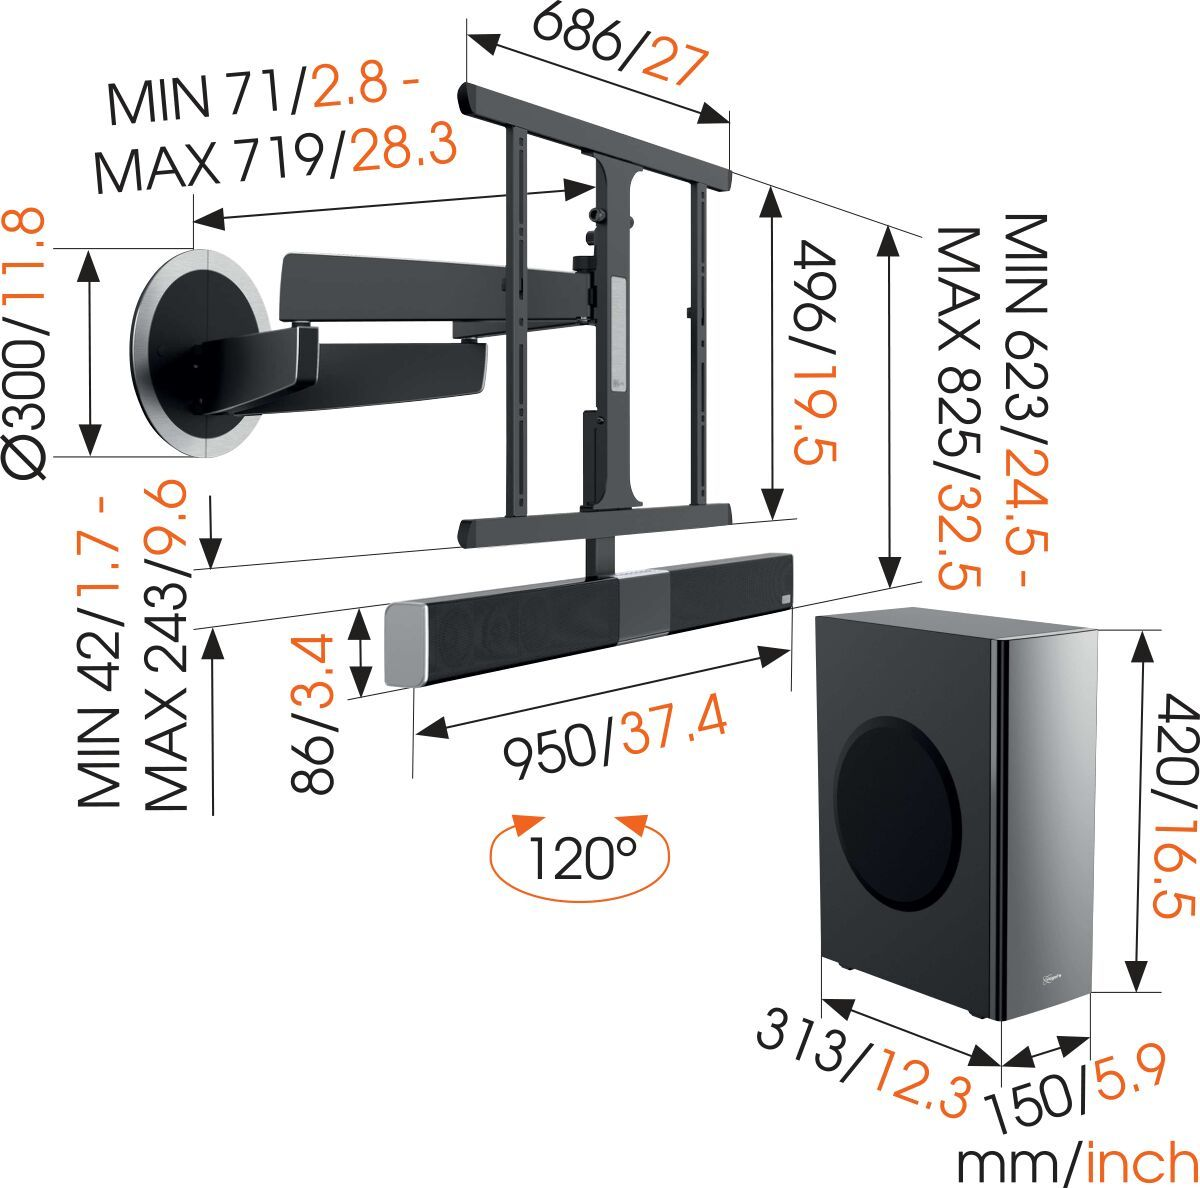 Vogel's SoundMount (NEXT 8365 GB) Full-Motion TV Wall Mount with Integrated Sound 40 65 30 Motion (up to 120°) Dimensions